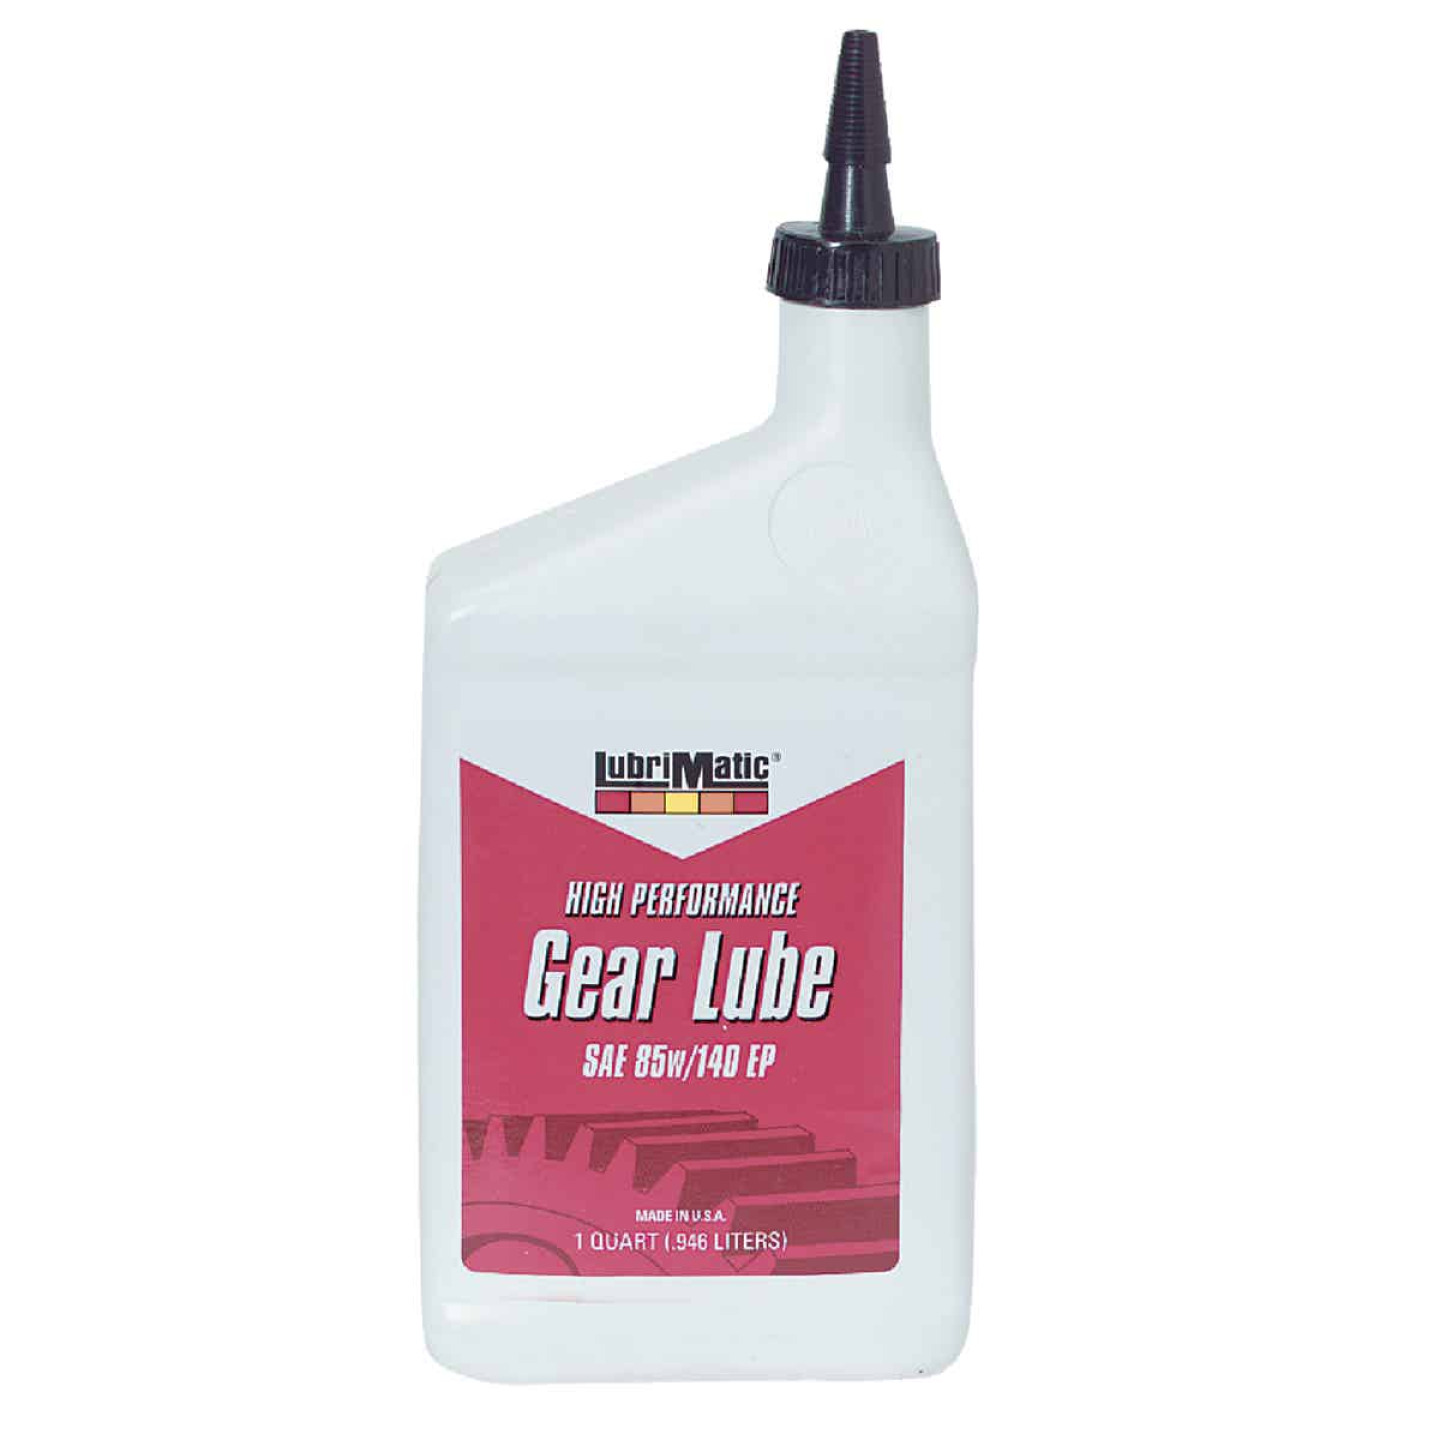 LubriMatic 1 Qt. 85W140 EP Gear Oil Lube Image 1